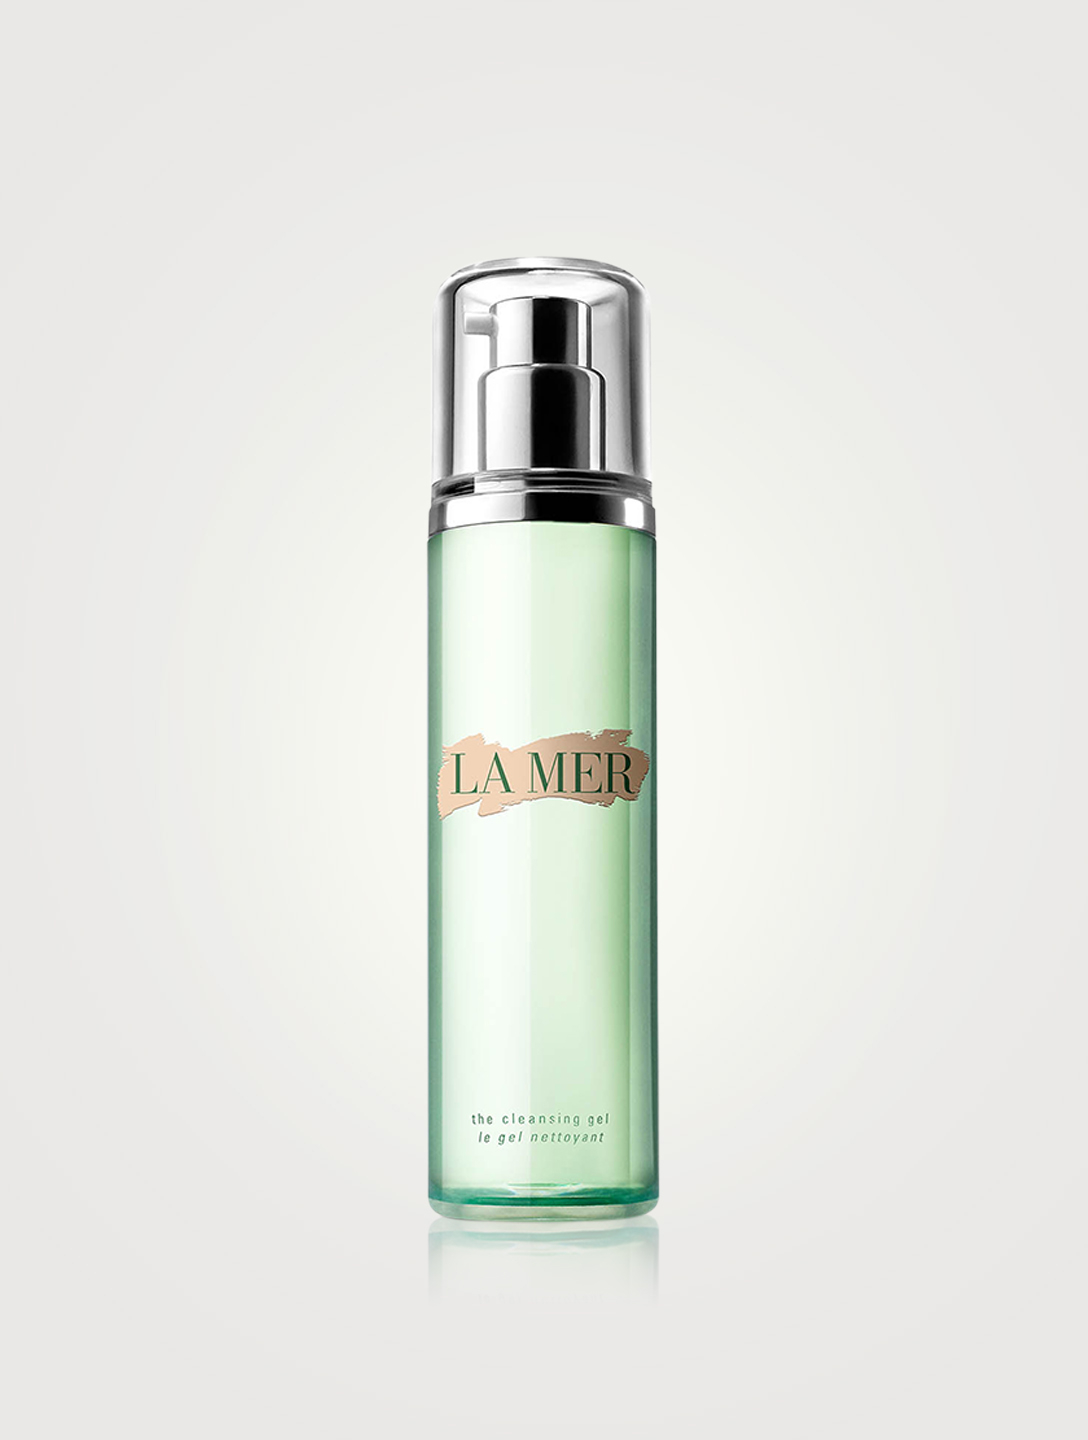 LA MER The Cleansing Gel Beauty